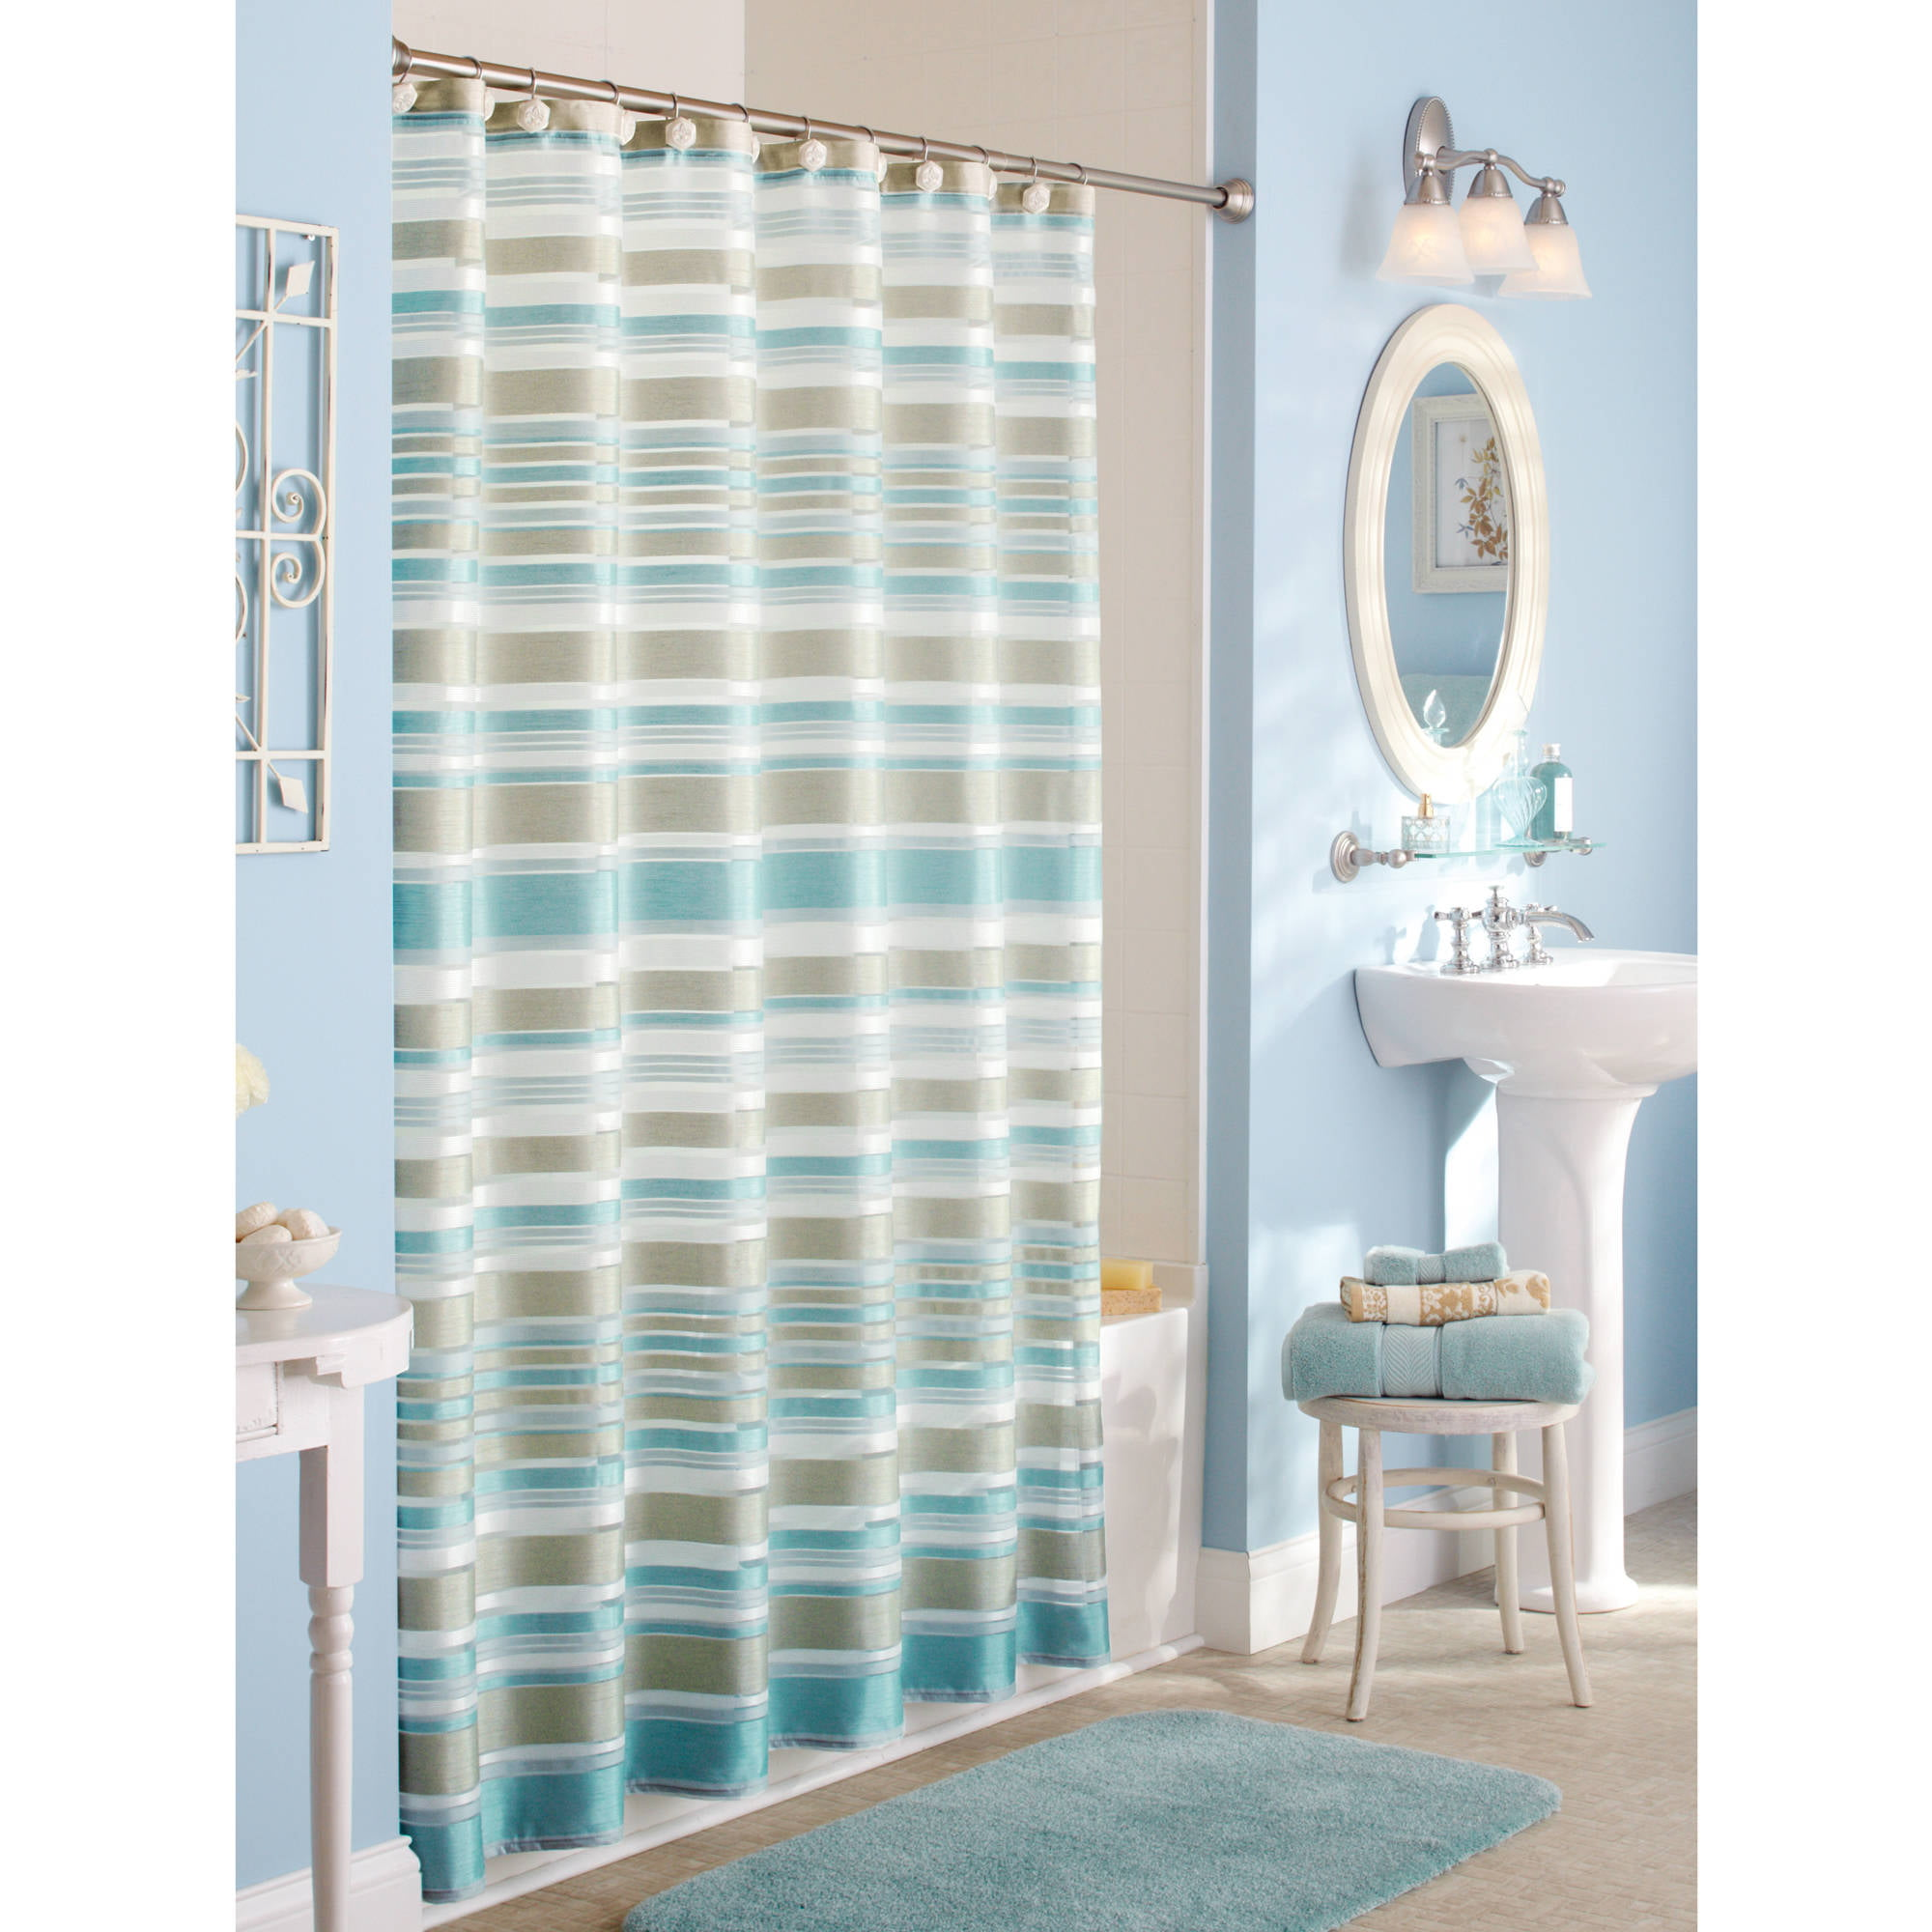 turquoise and black shower curtain. Better Homes and Gardens Classic Stripe Fabric Shower Curtain  Walmart com